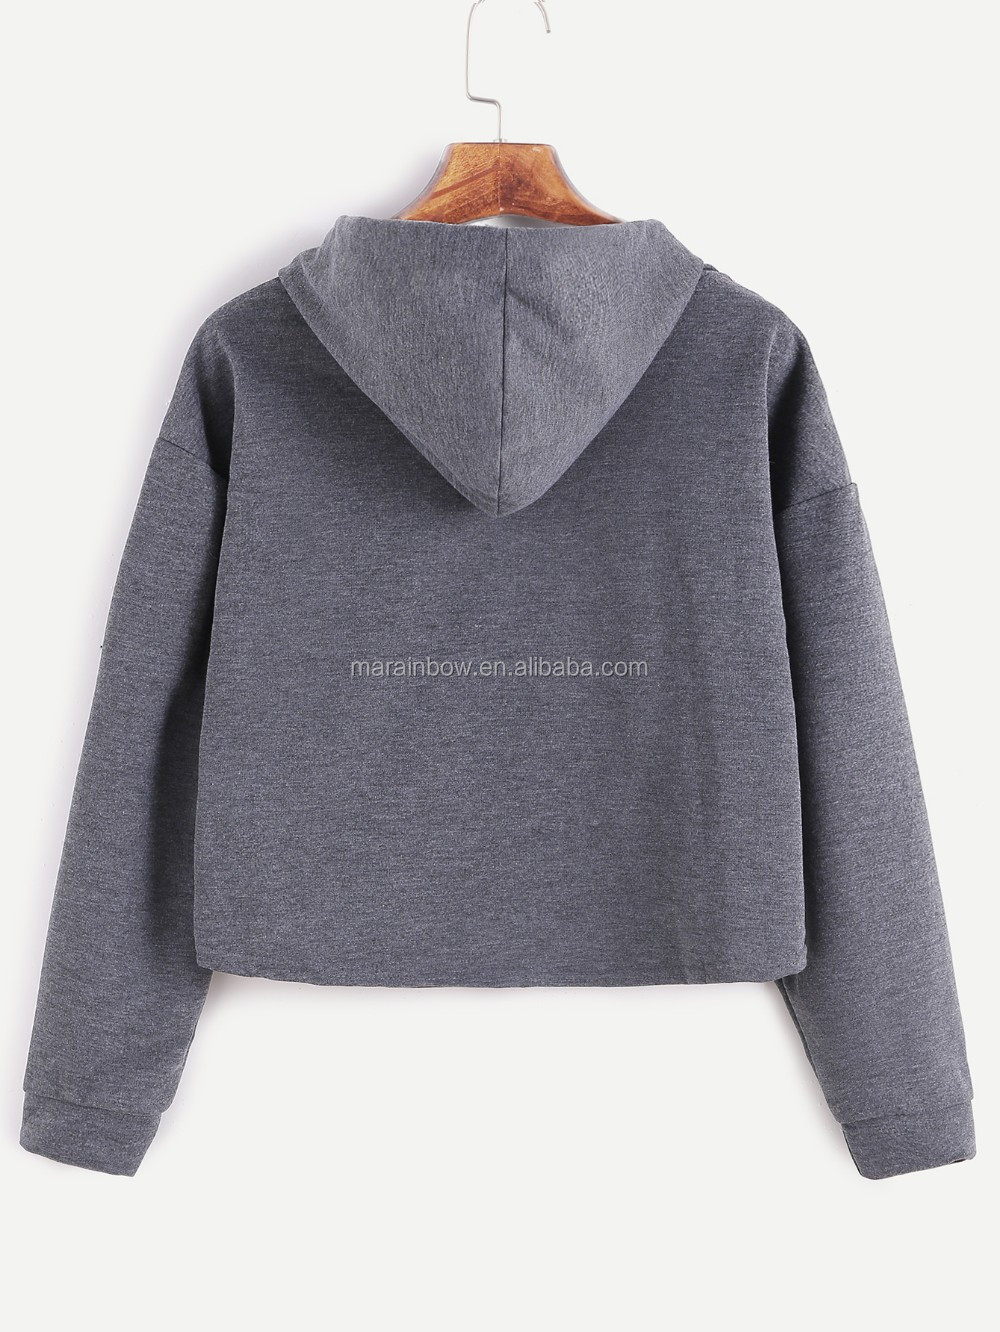 Dark Grey Loose Fit Womens Plain Cotton Crop Top Hoodie Drop ...